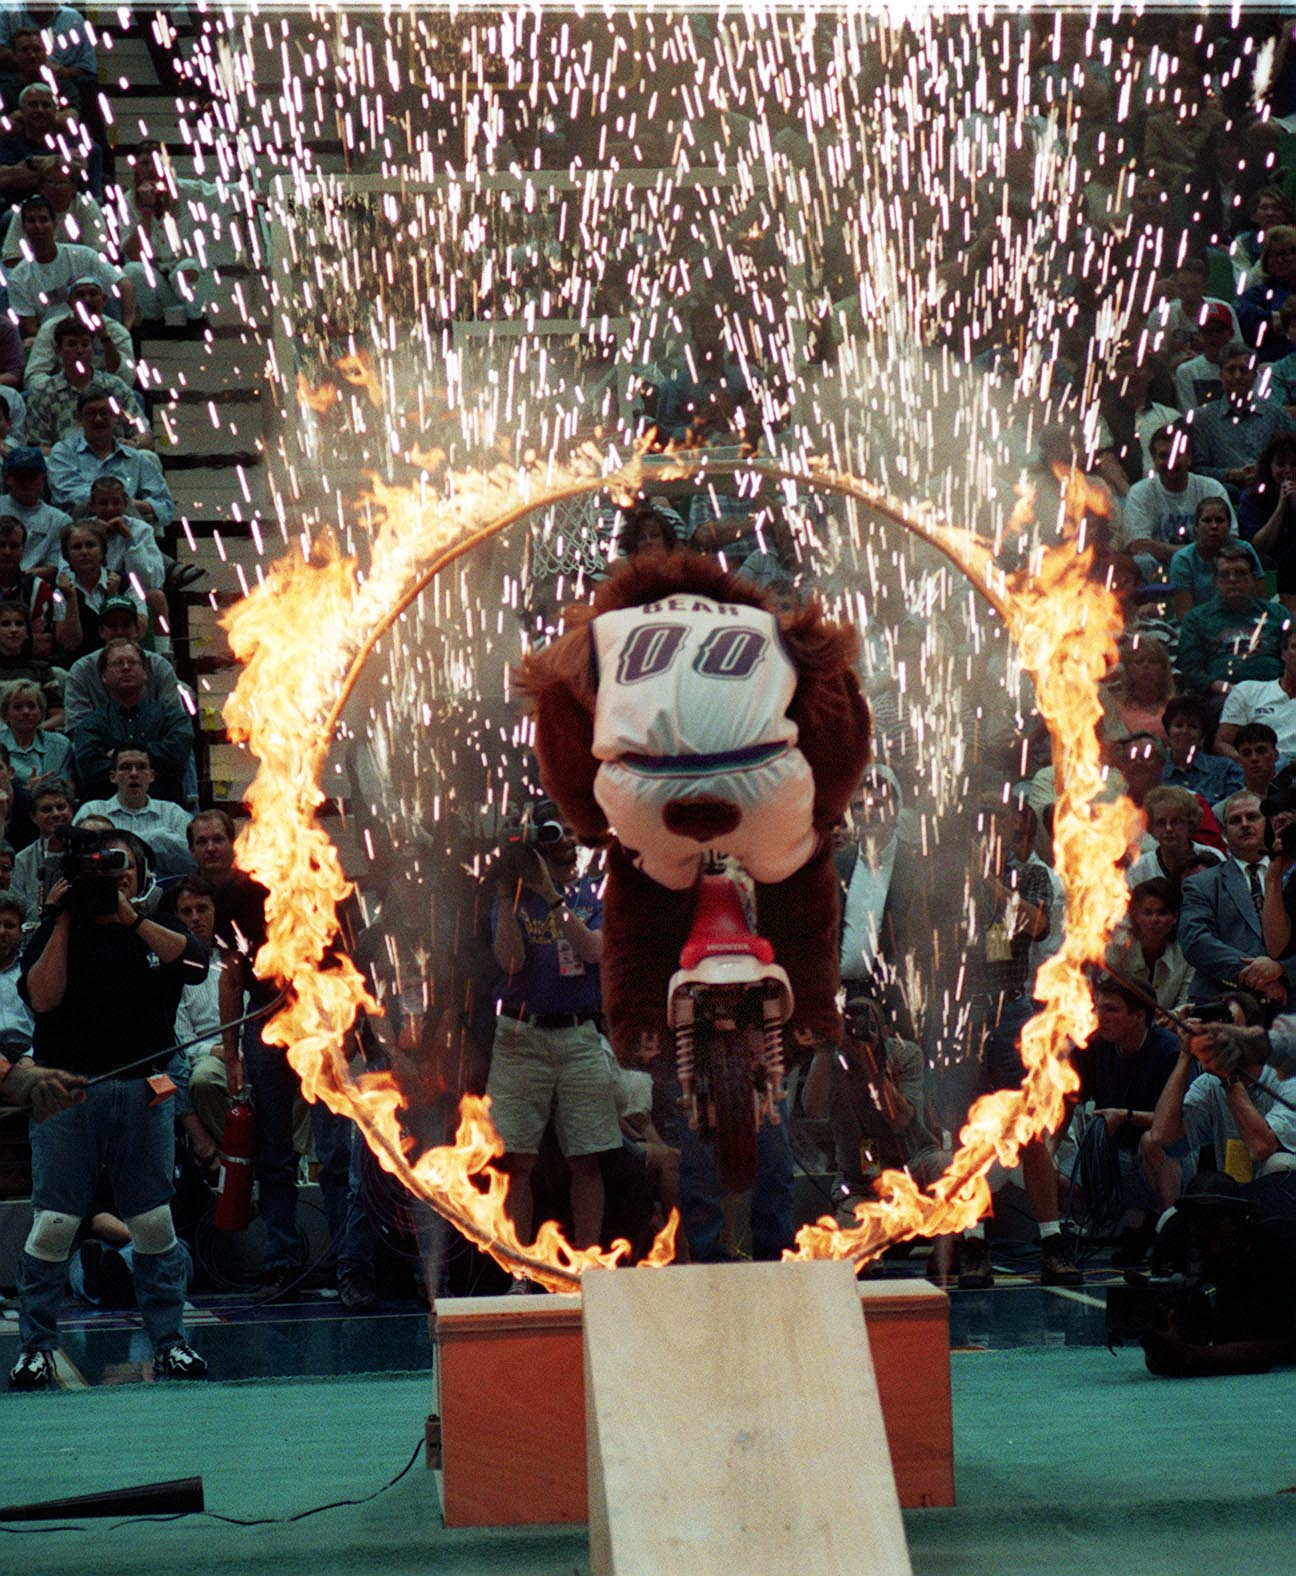 FILE - The Jazz Bear rides a bike through a ring of fire during a break in an NBA game in the Delta Center in Salt Lake City on May 13, 1997.